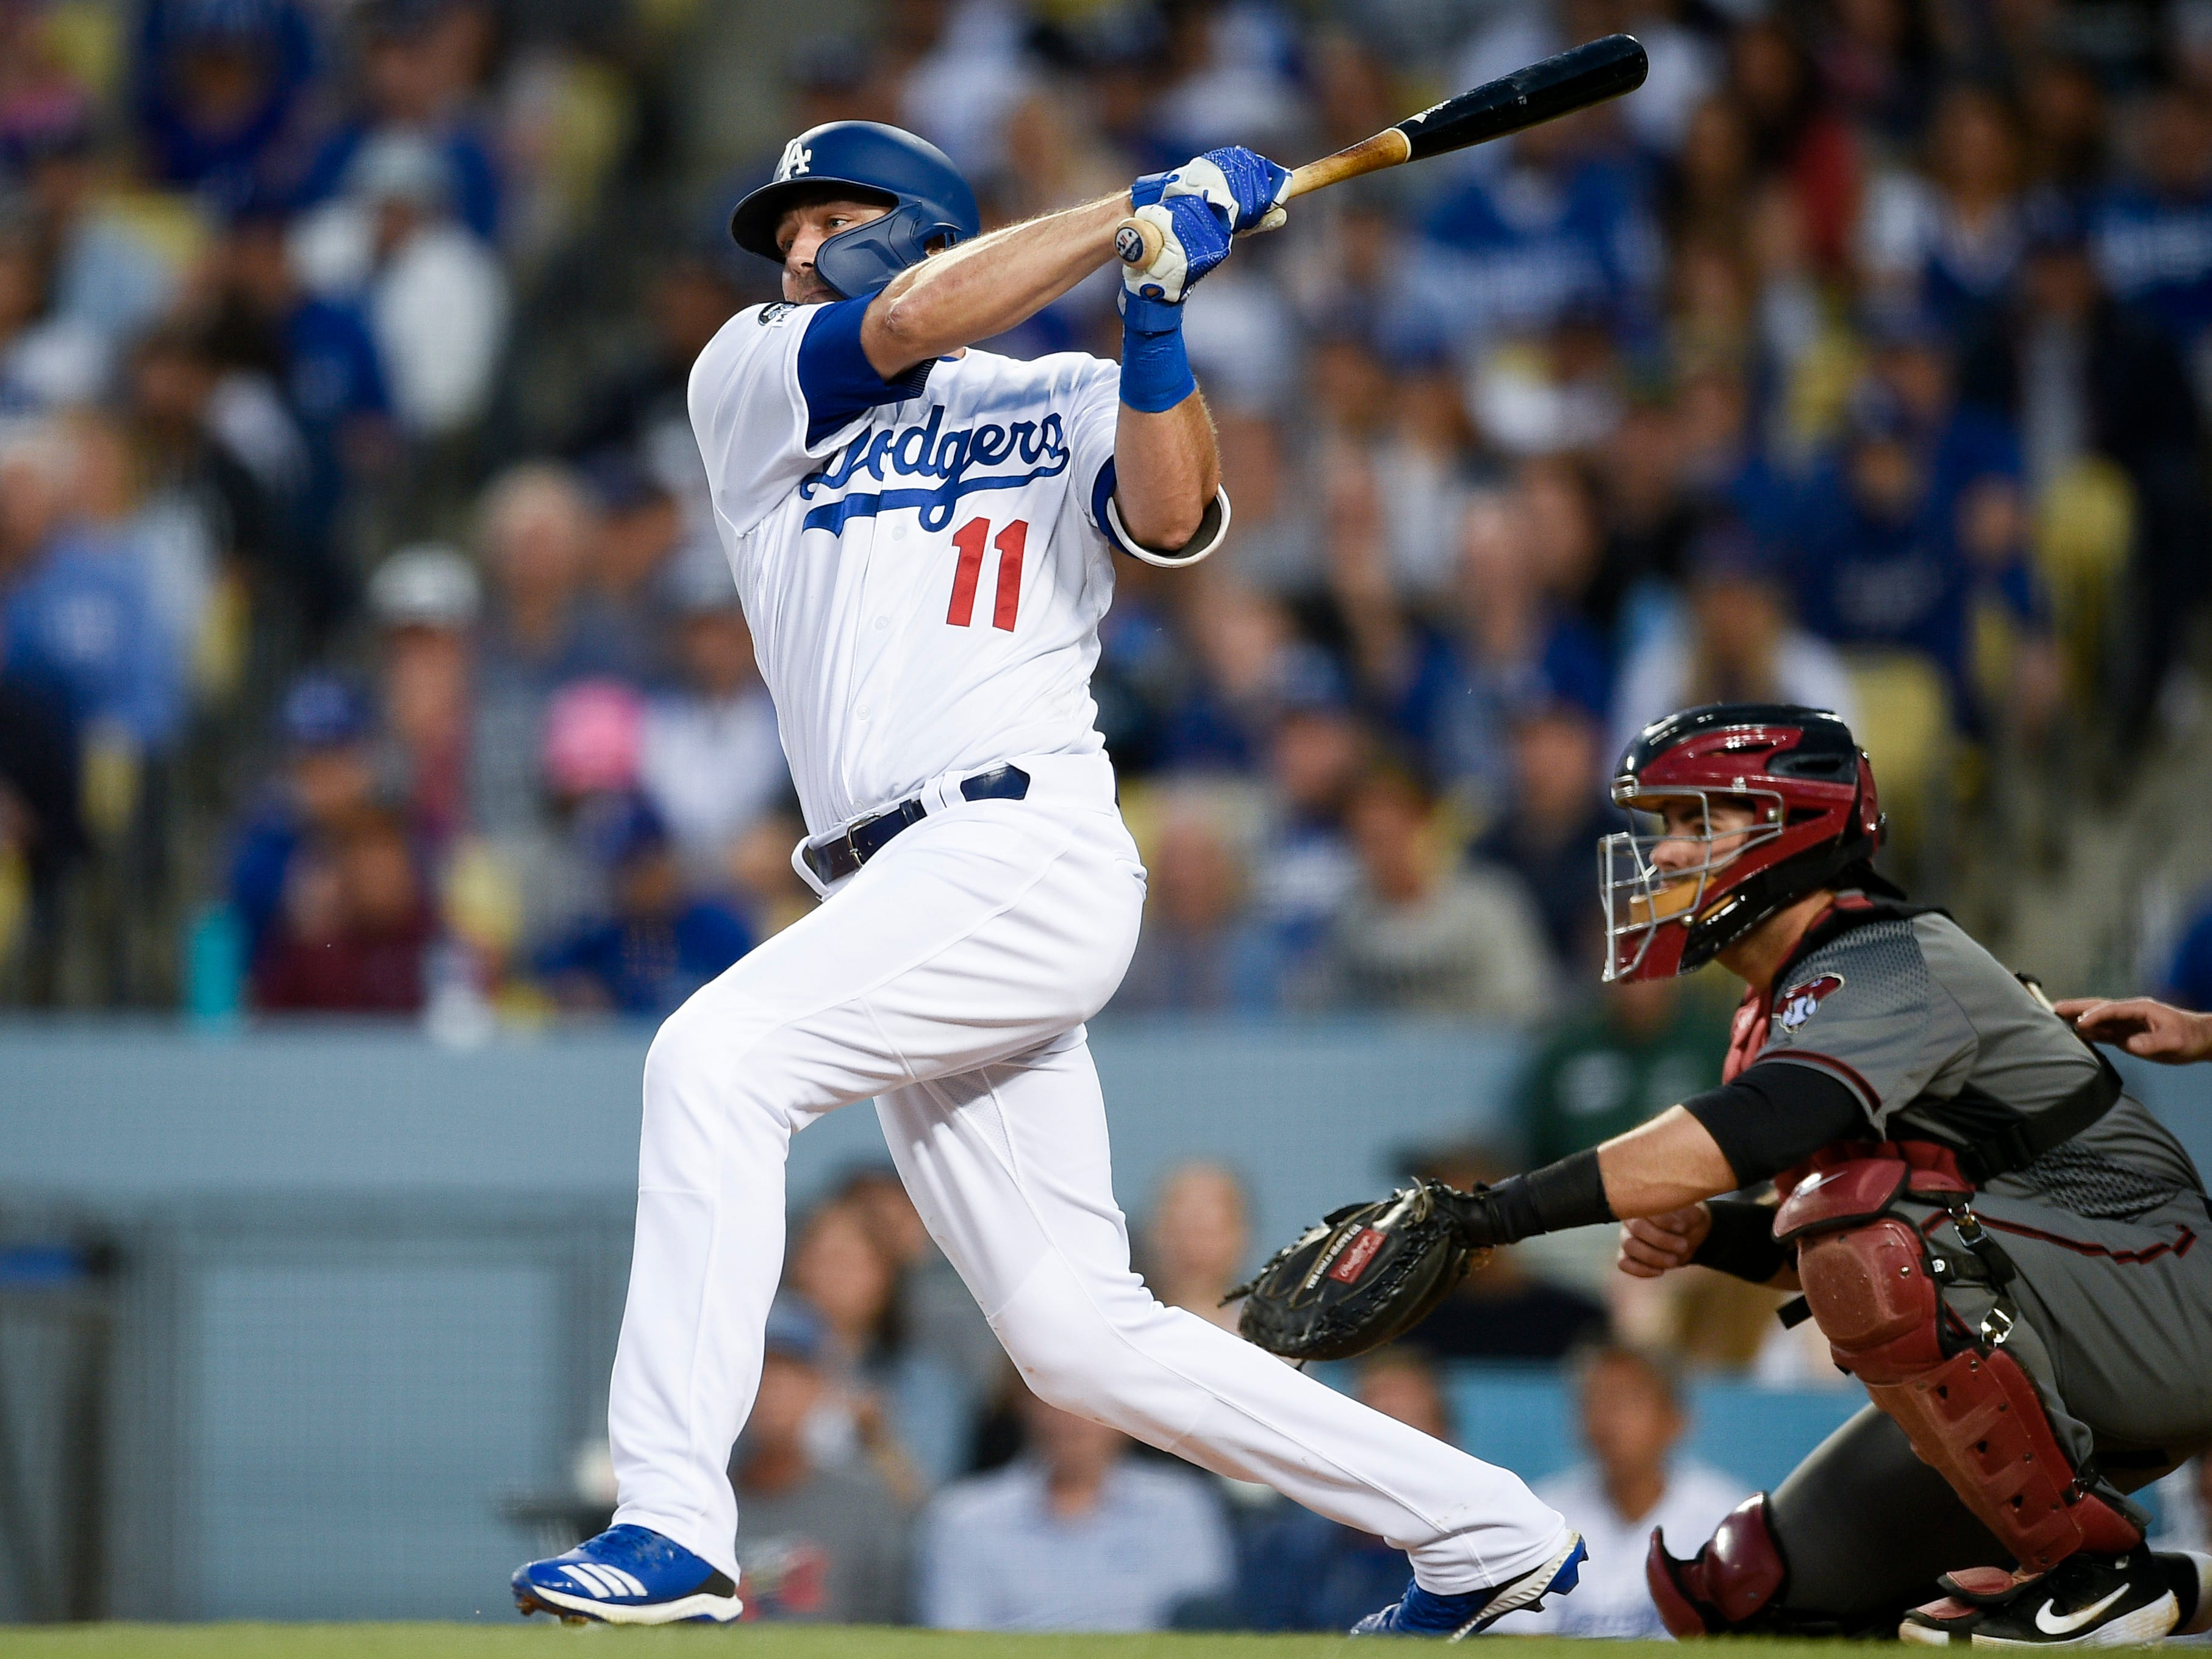 Mar 30, 2019; Los Angeles, CA, USA; Los Angeles Dodgers center fielder A.J. Pollock (11) follows through on a swing for an RBI single during the third inning against the Arizona Diamondbacks at Dodger Stadium. Mandatory Credit: Kelvin Kuo-USA TODAY Sports